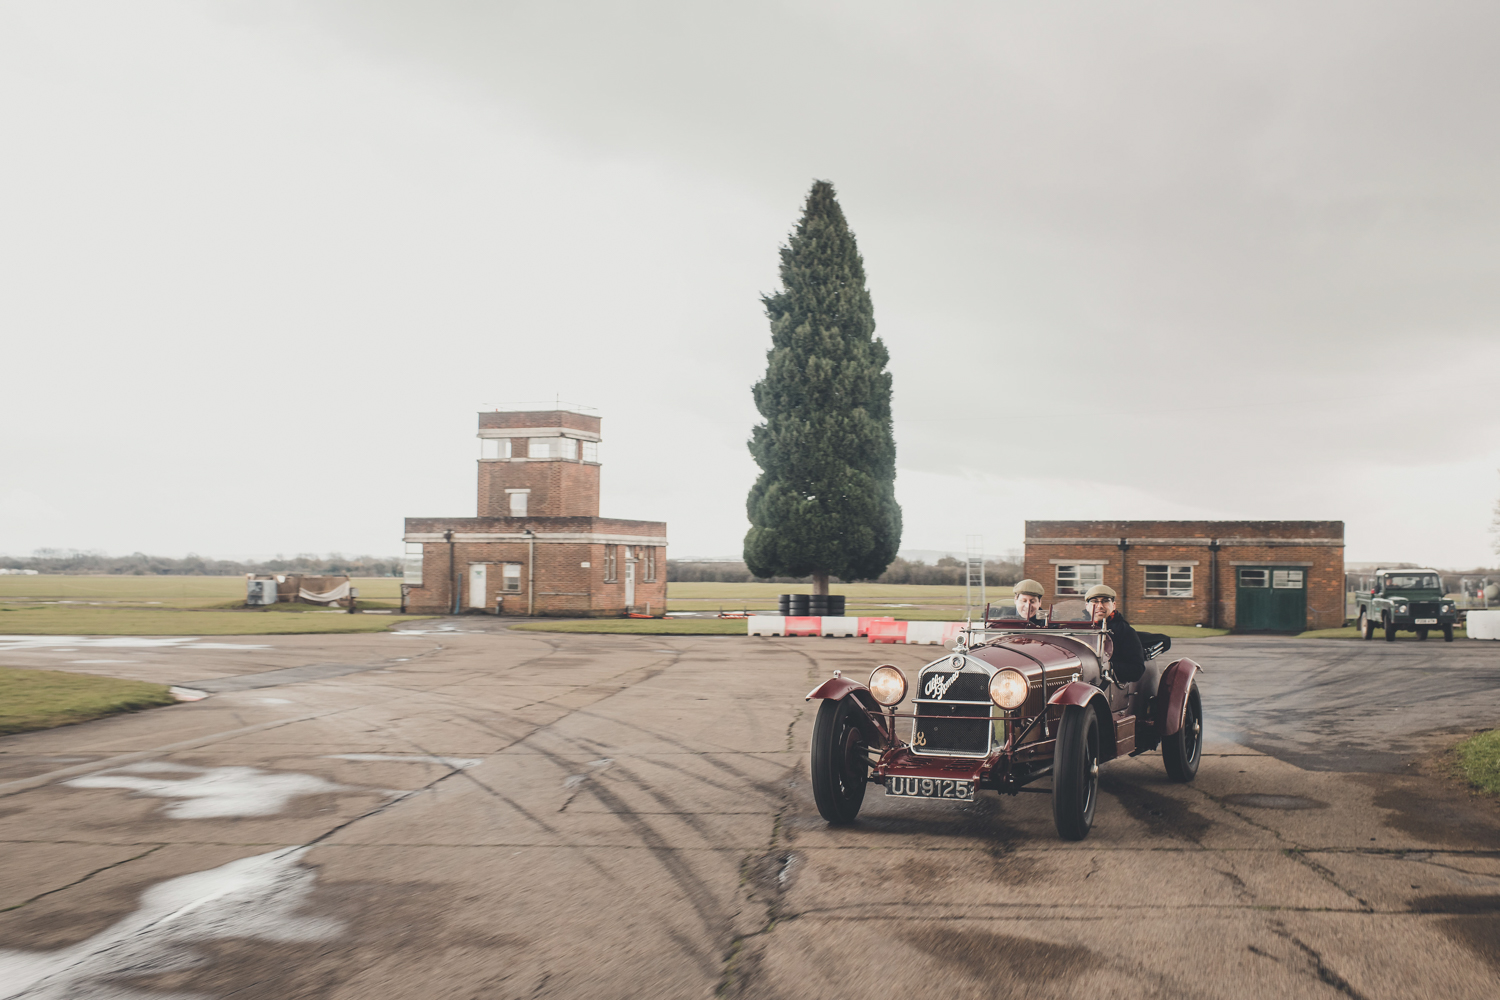 The first aircraft to land on Bicester's grass field came in 1914. Today, the former RAF Bicester is an old-car playground that includes a test track where on-site car dealer Robert Glover (left) demonstrates a 1929 Alfa 6C 1750 Super Sports about to go to the Mille Miglia.